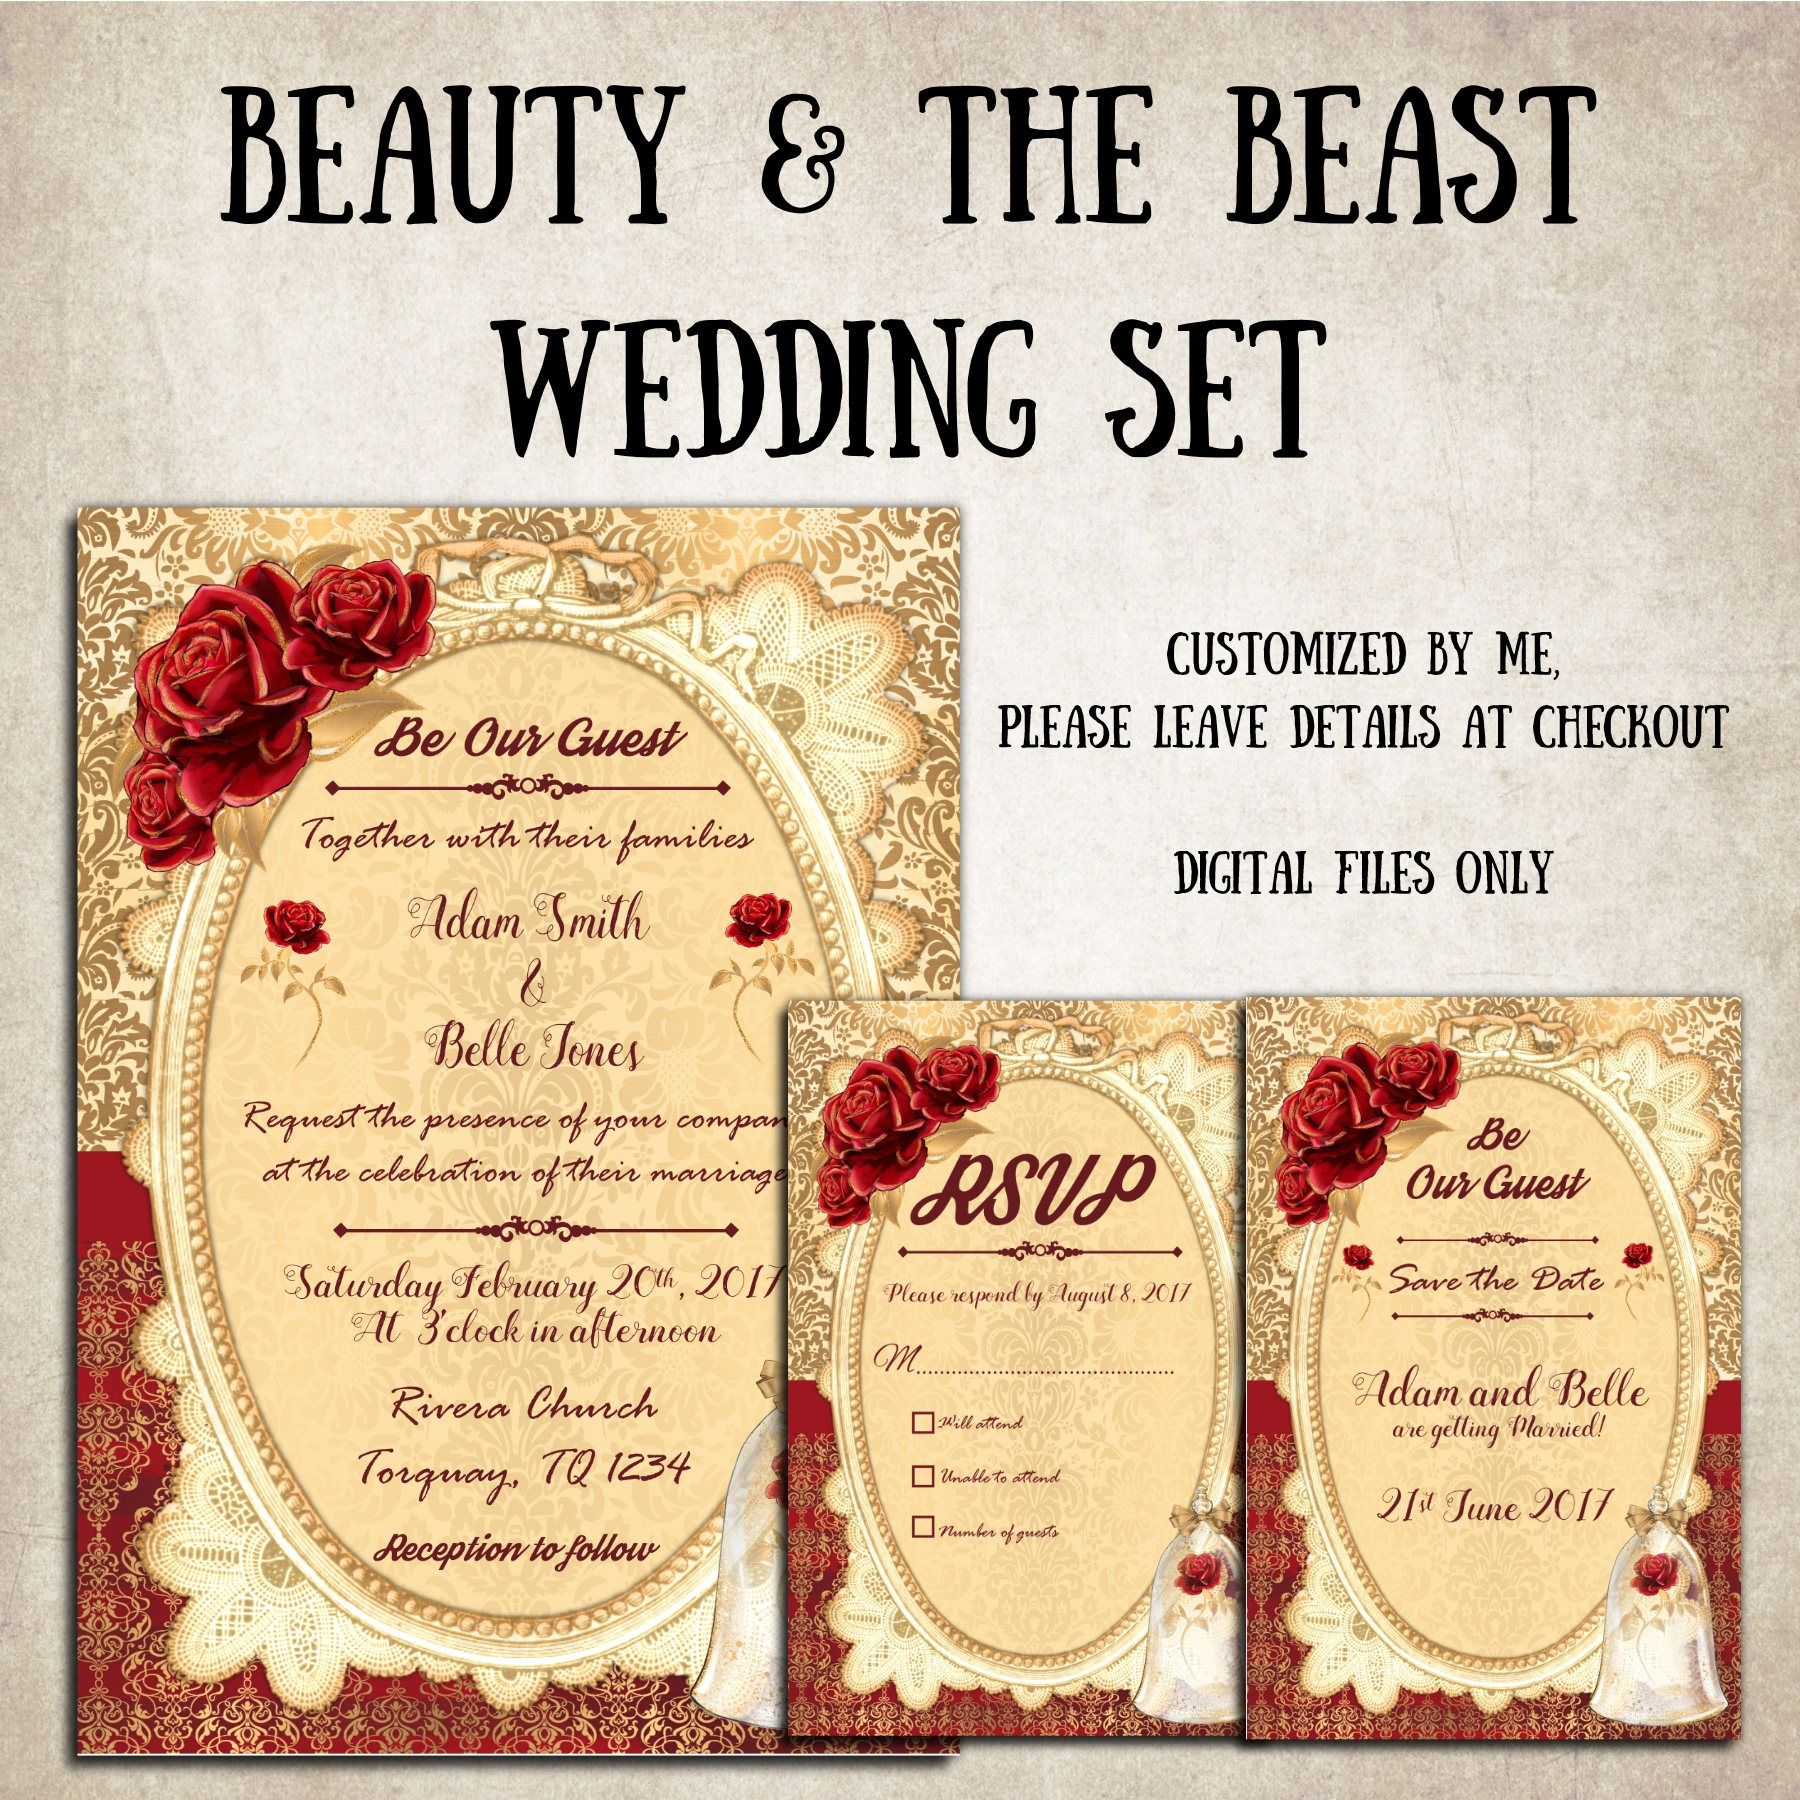 Beauty And The Beast Wedding Invitations With RSVP Save